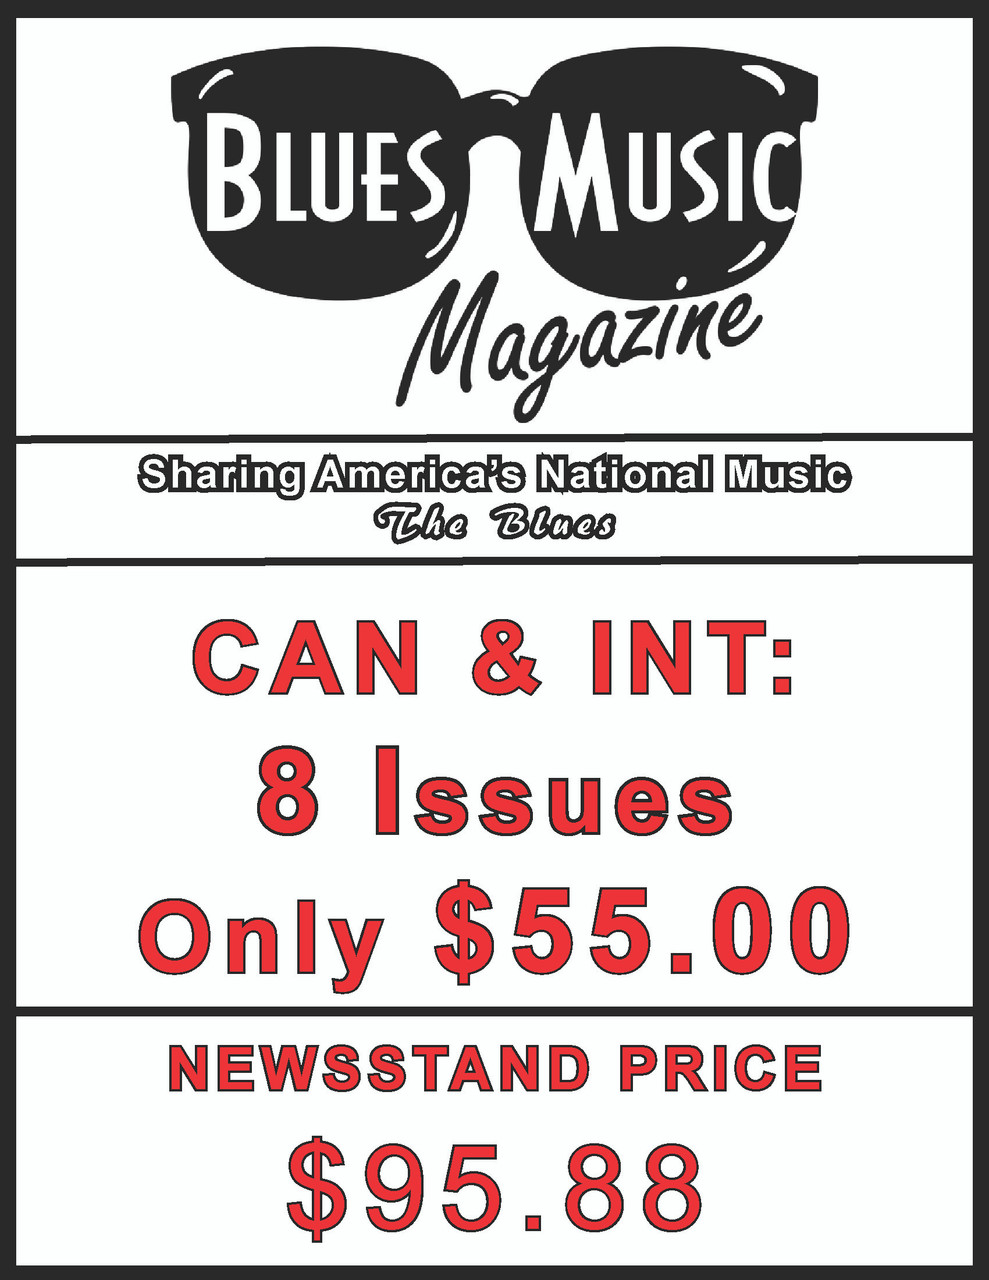 CAN & INT. SUBSCRIBE OR RENEW FOR 8 ISSUES = 2 YEARS